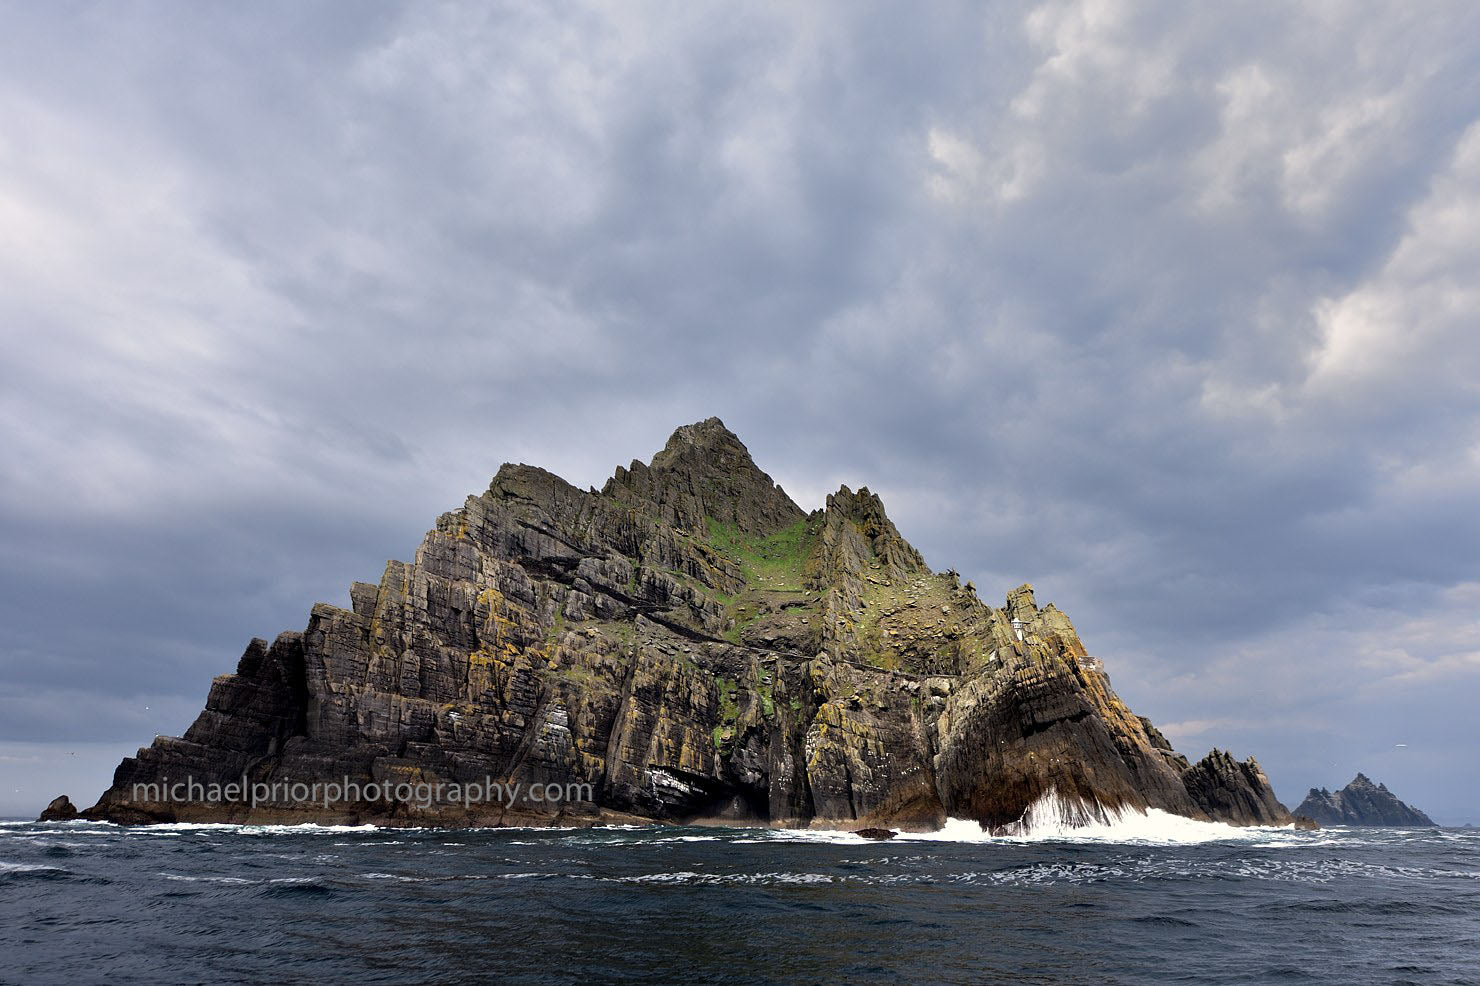 Skellig Michael With The Little Skellig in the Background - Michael Prior Photography